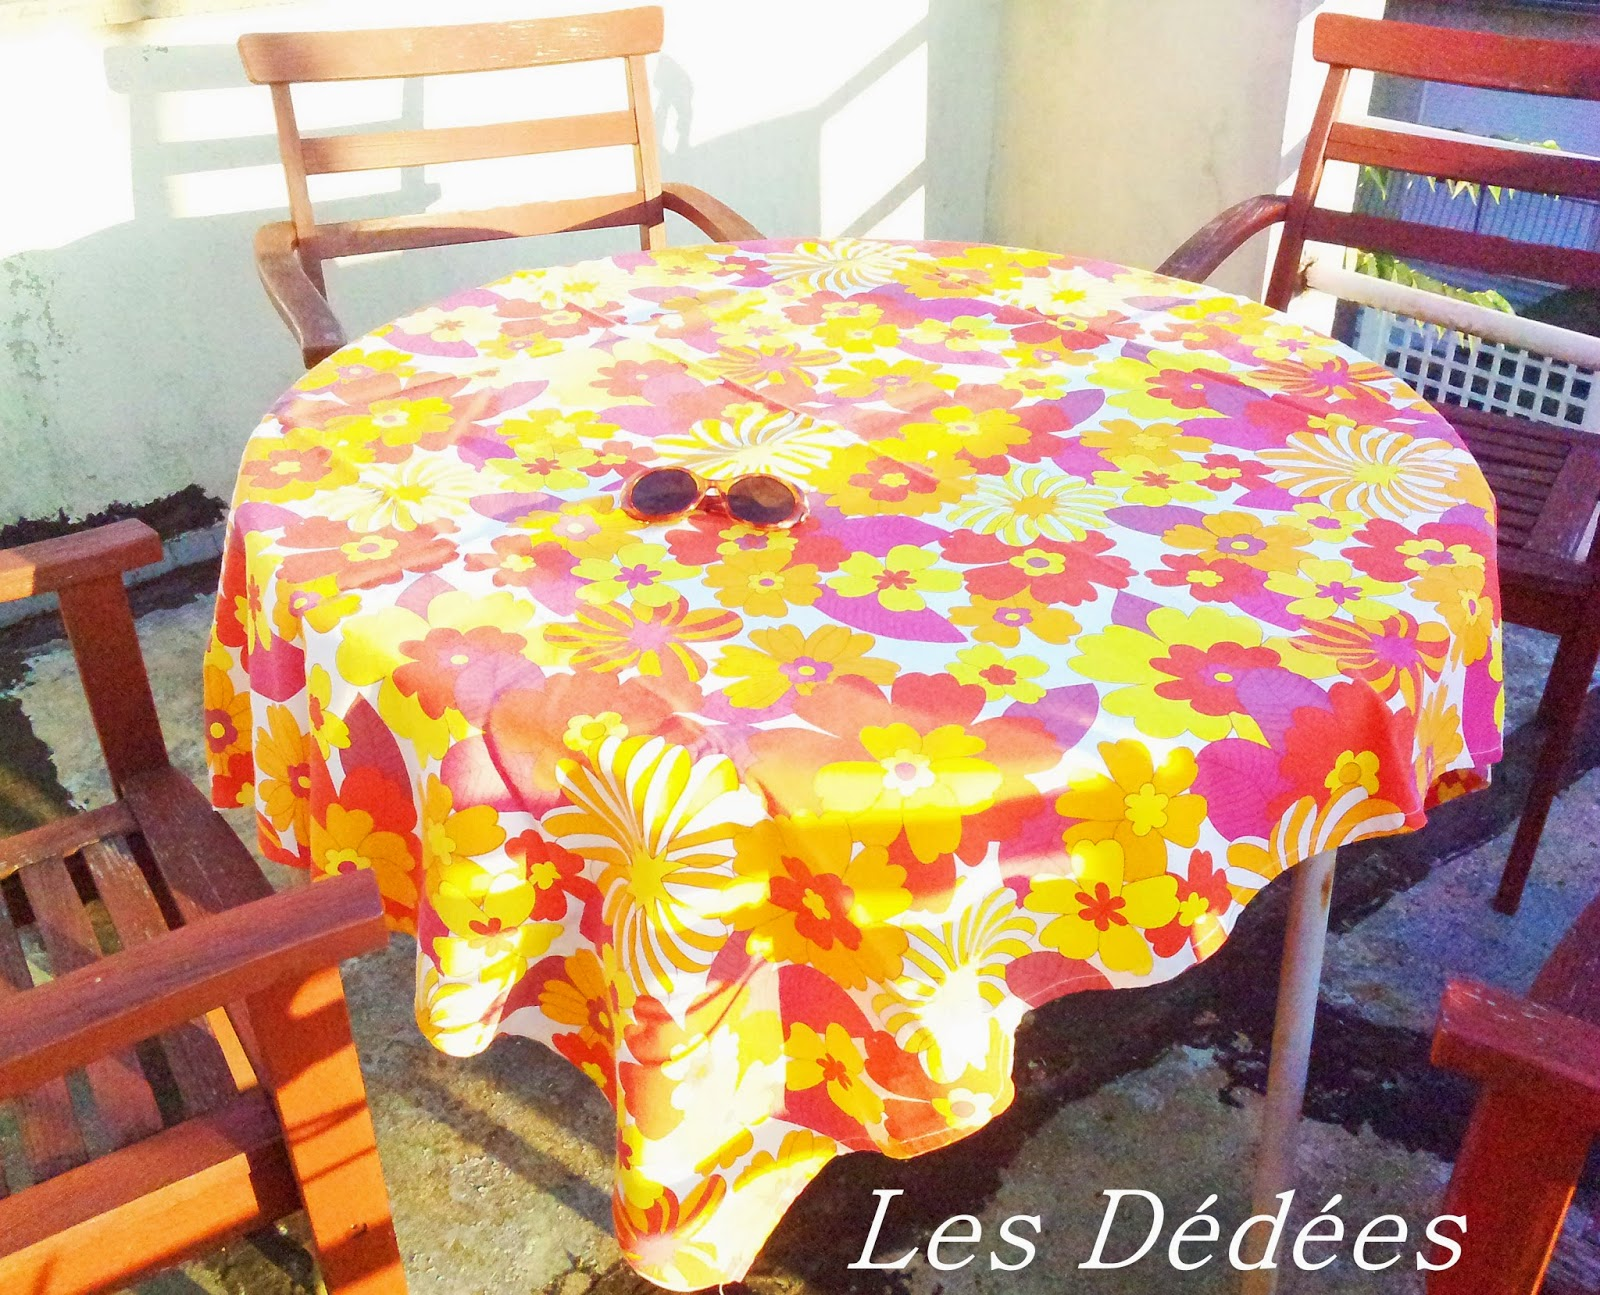 Decoration Nappe De Table Comfortable 70s Decorations Image Result For Party Table